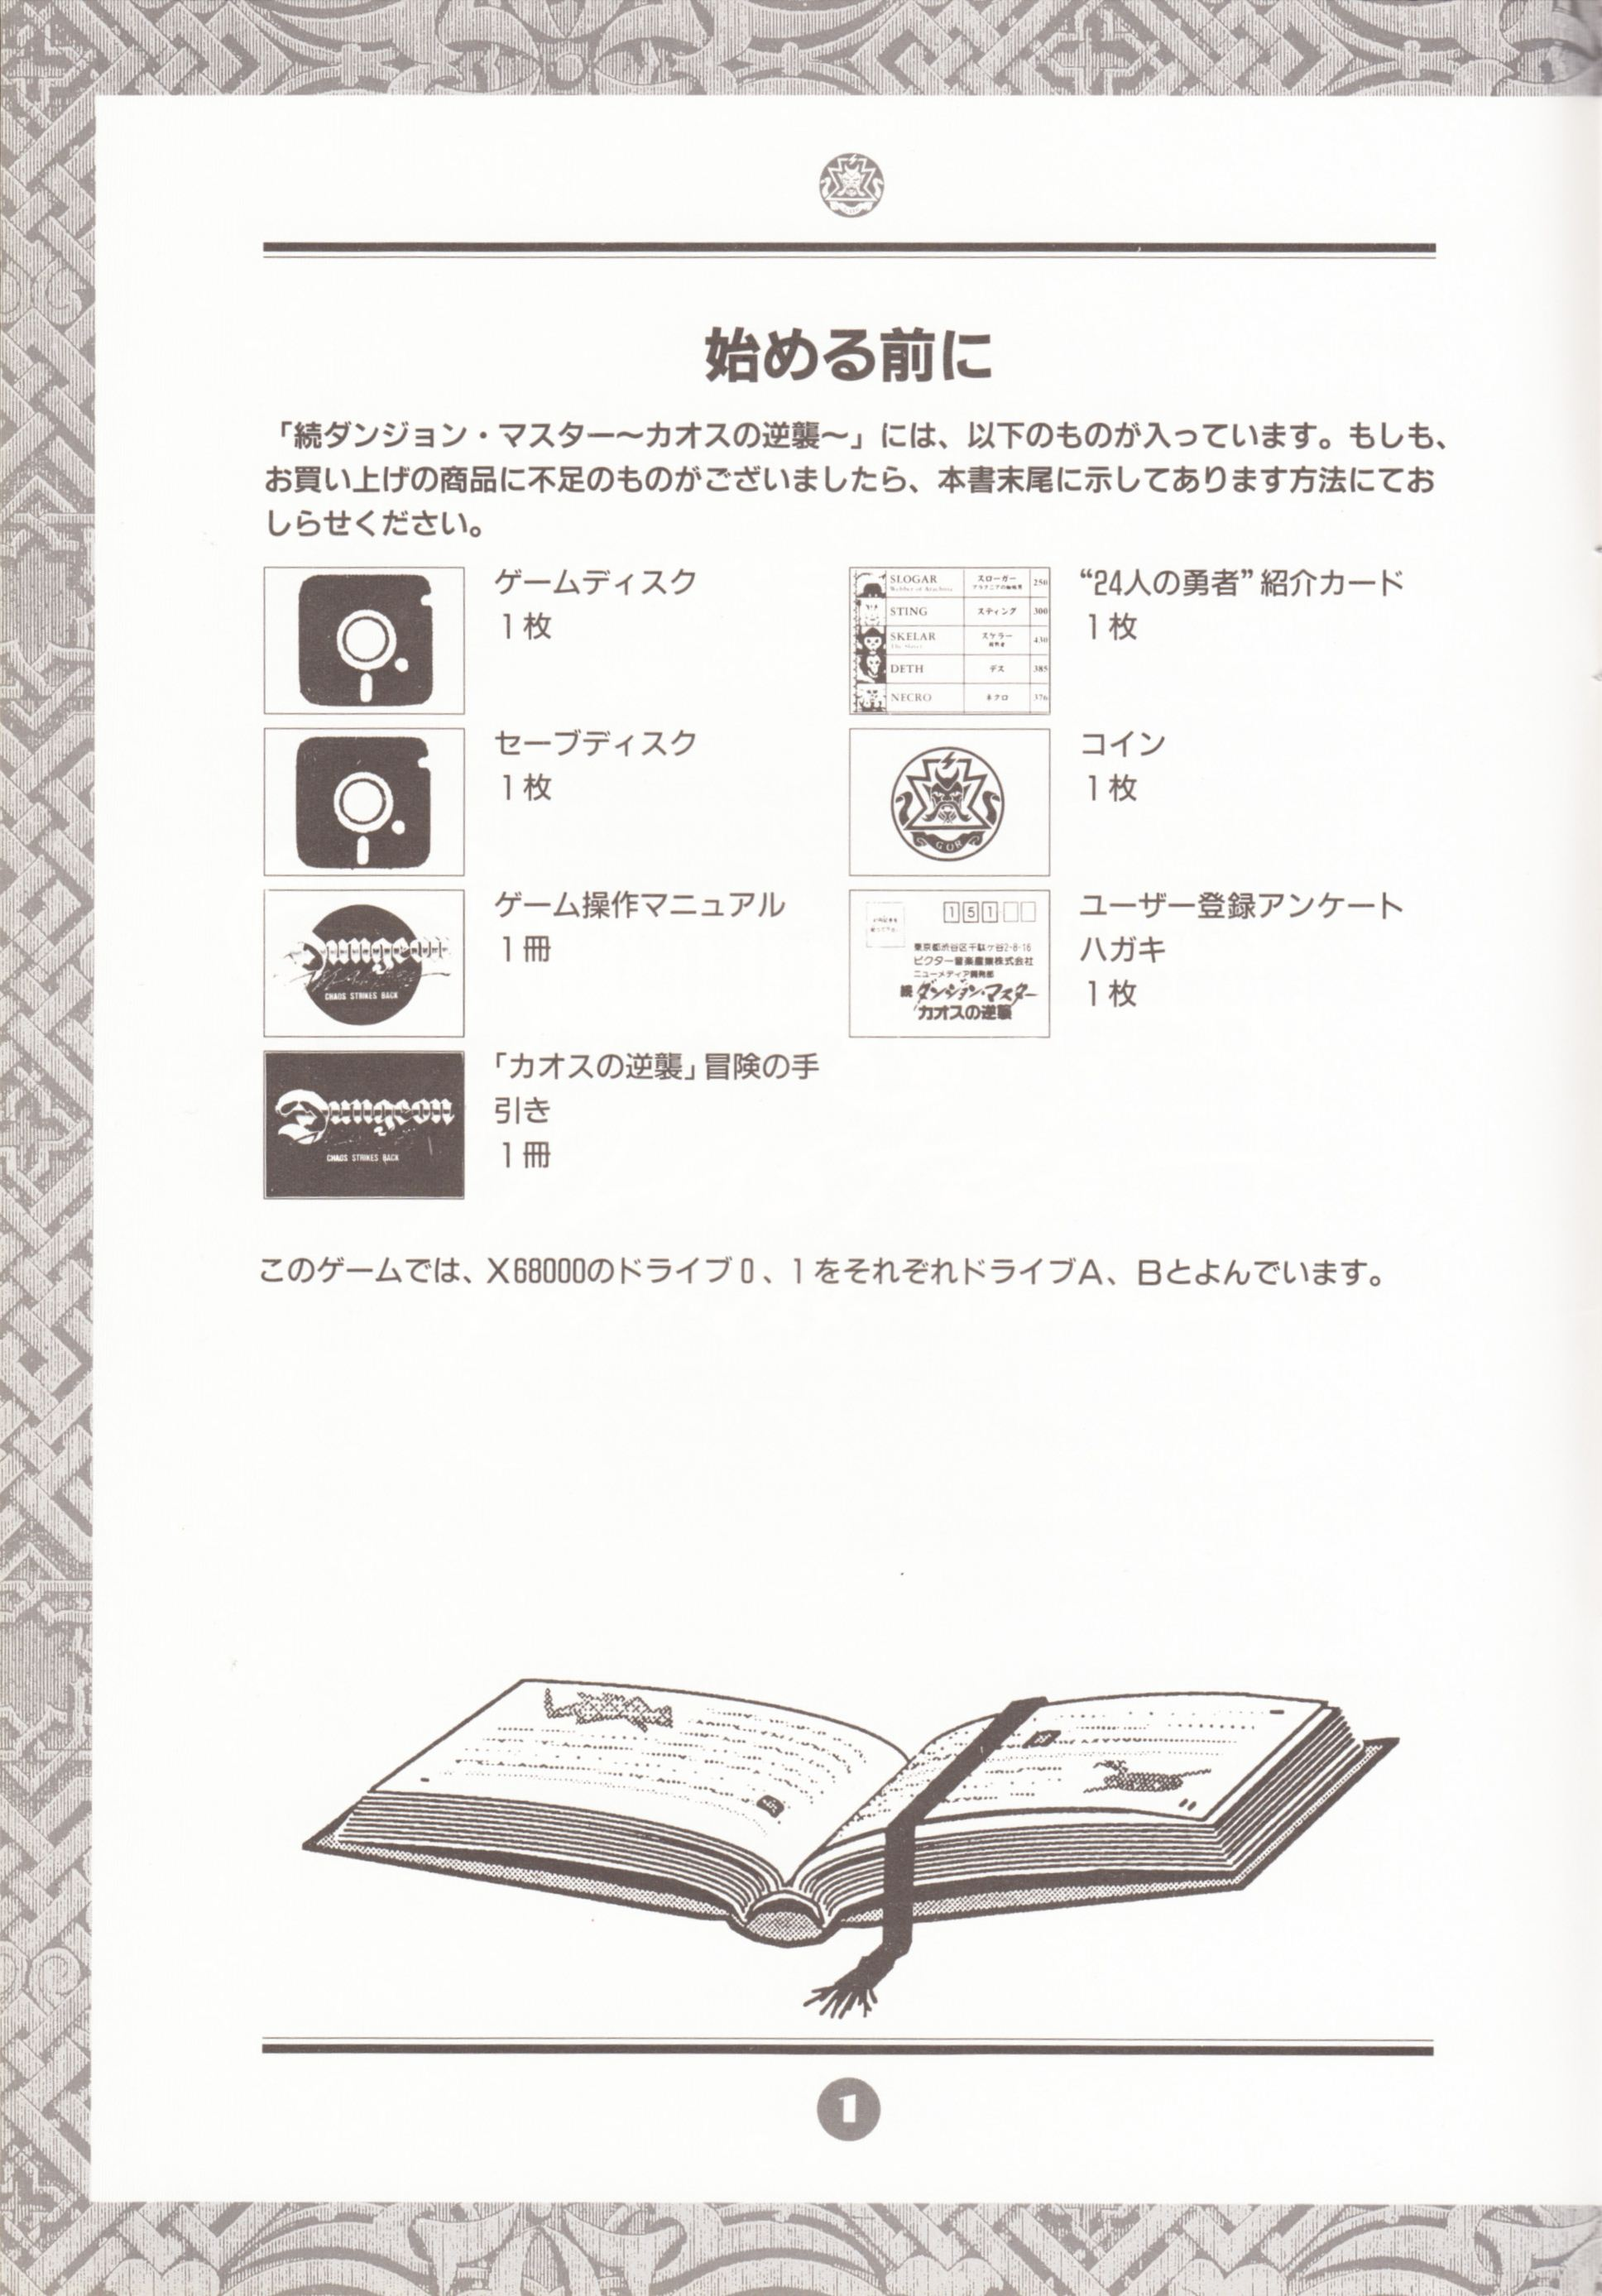 Game - Chaos Strikes Back - JP - X68000 - An Operation Manual - Page 004 - Scan